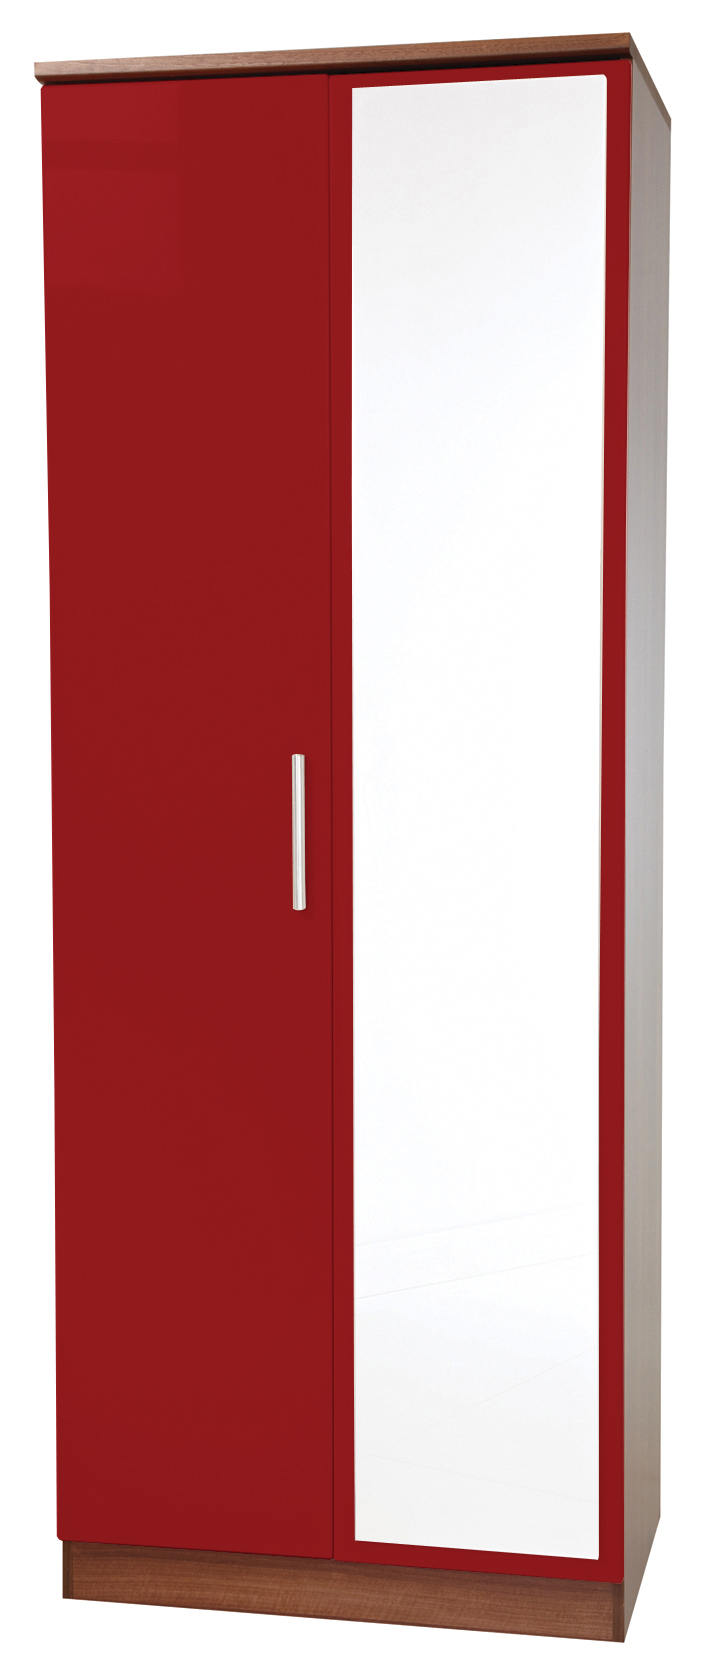 "KNIGHTSBRIDGE 30"" (HI/GLOSS) MIRROR WARDROBE"